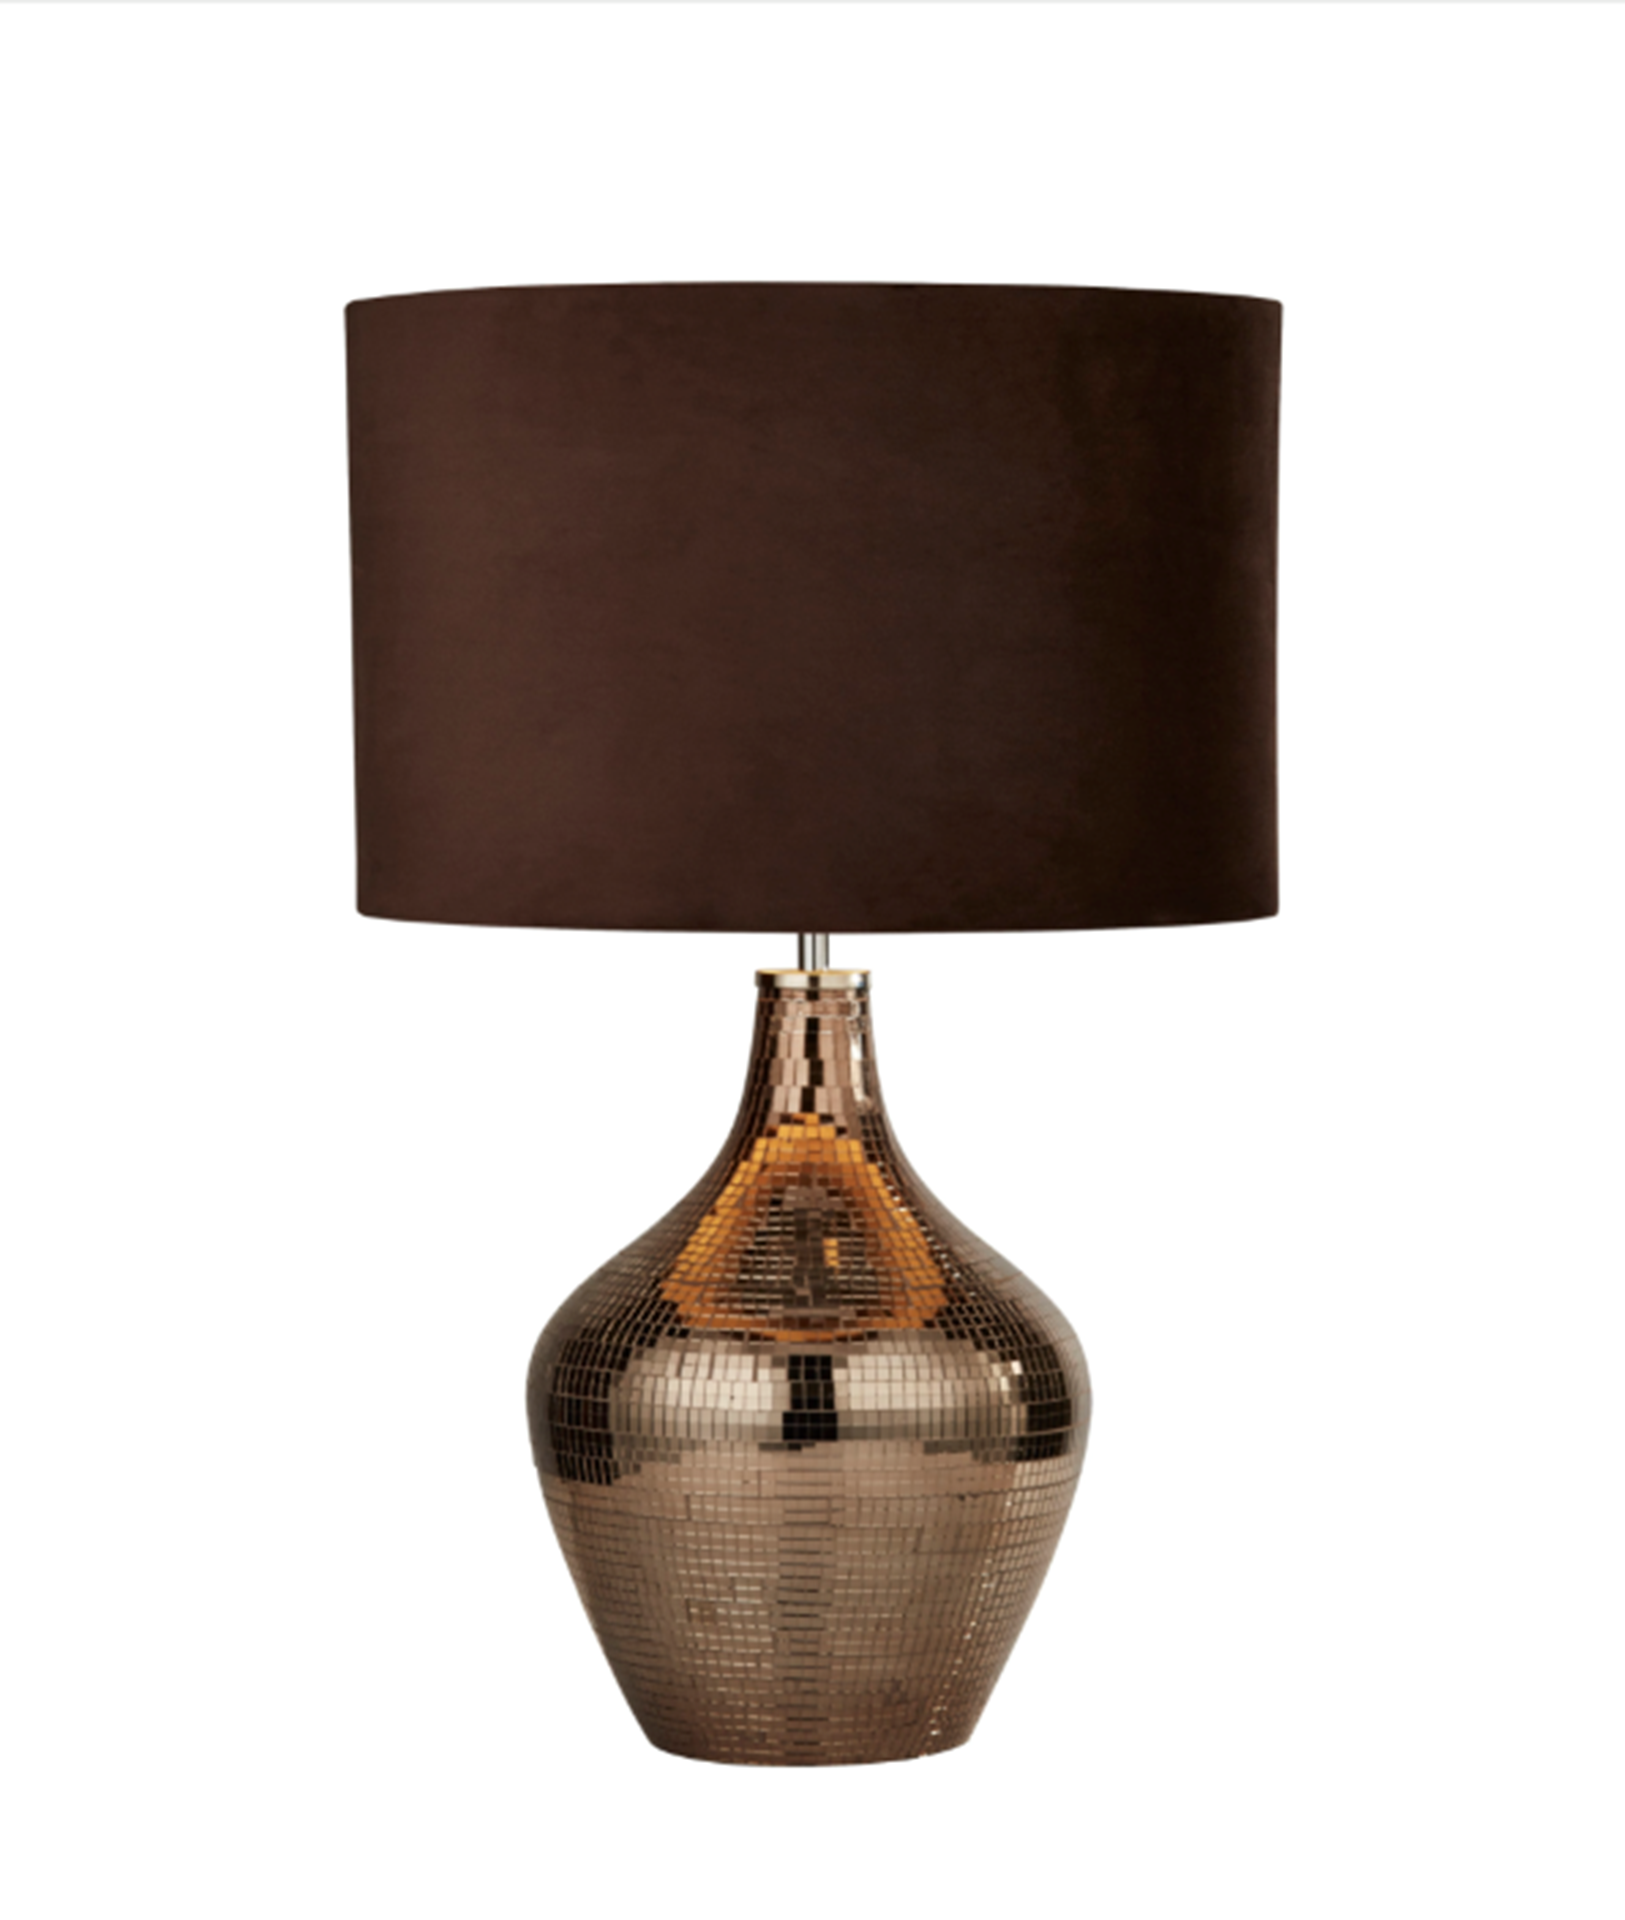 SEARCHLIGHT SMOKED MOSAIC TABLE LAMP WITH BROWN SUEDE SHADE 3847SM